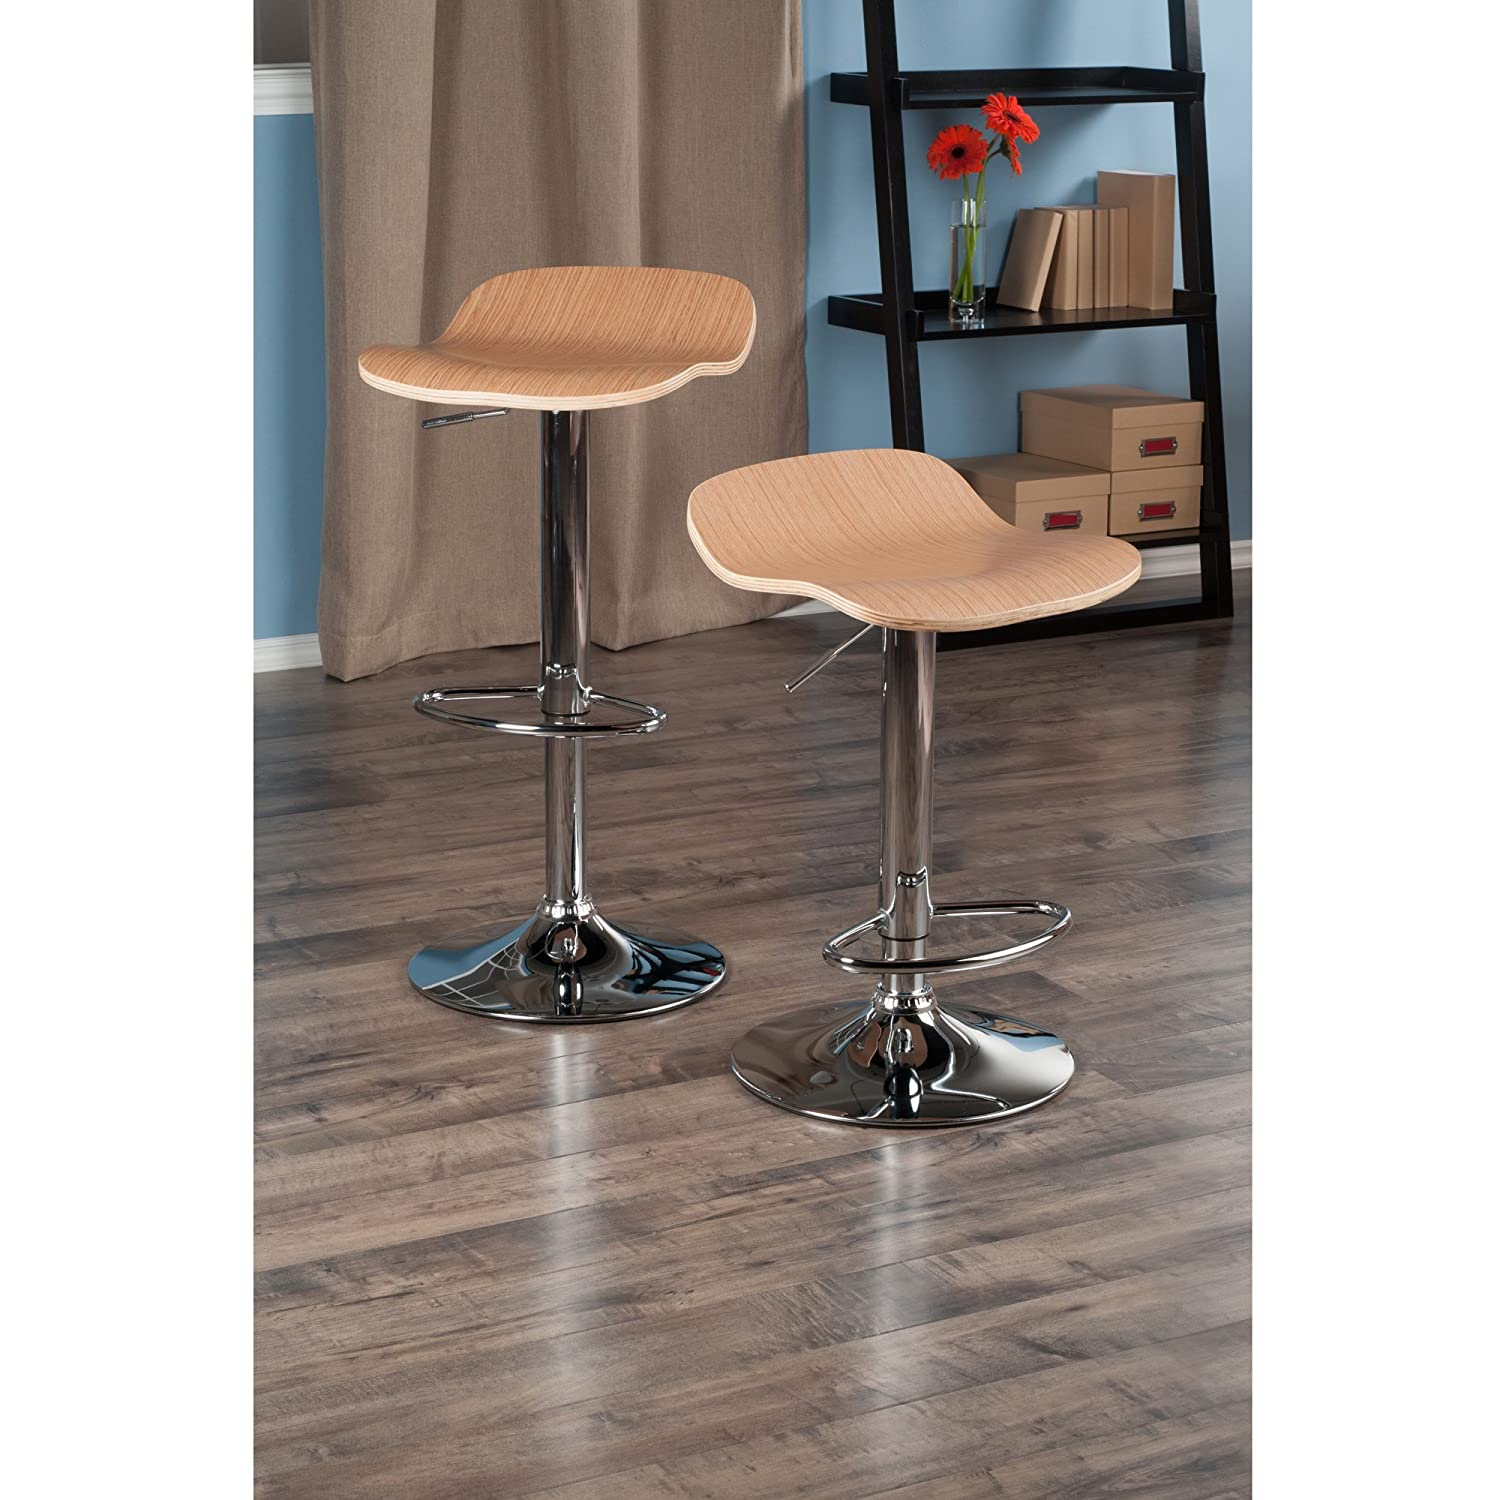 amazoncom winsome kallie air lift adjustable stools in wood veneer with cappuccino color and metal base set of 2 kitchen u0026 dining